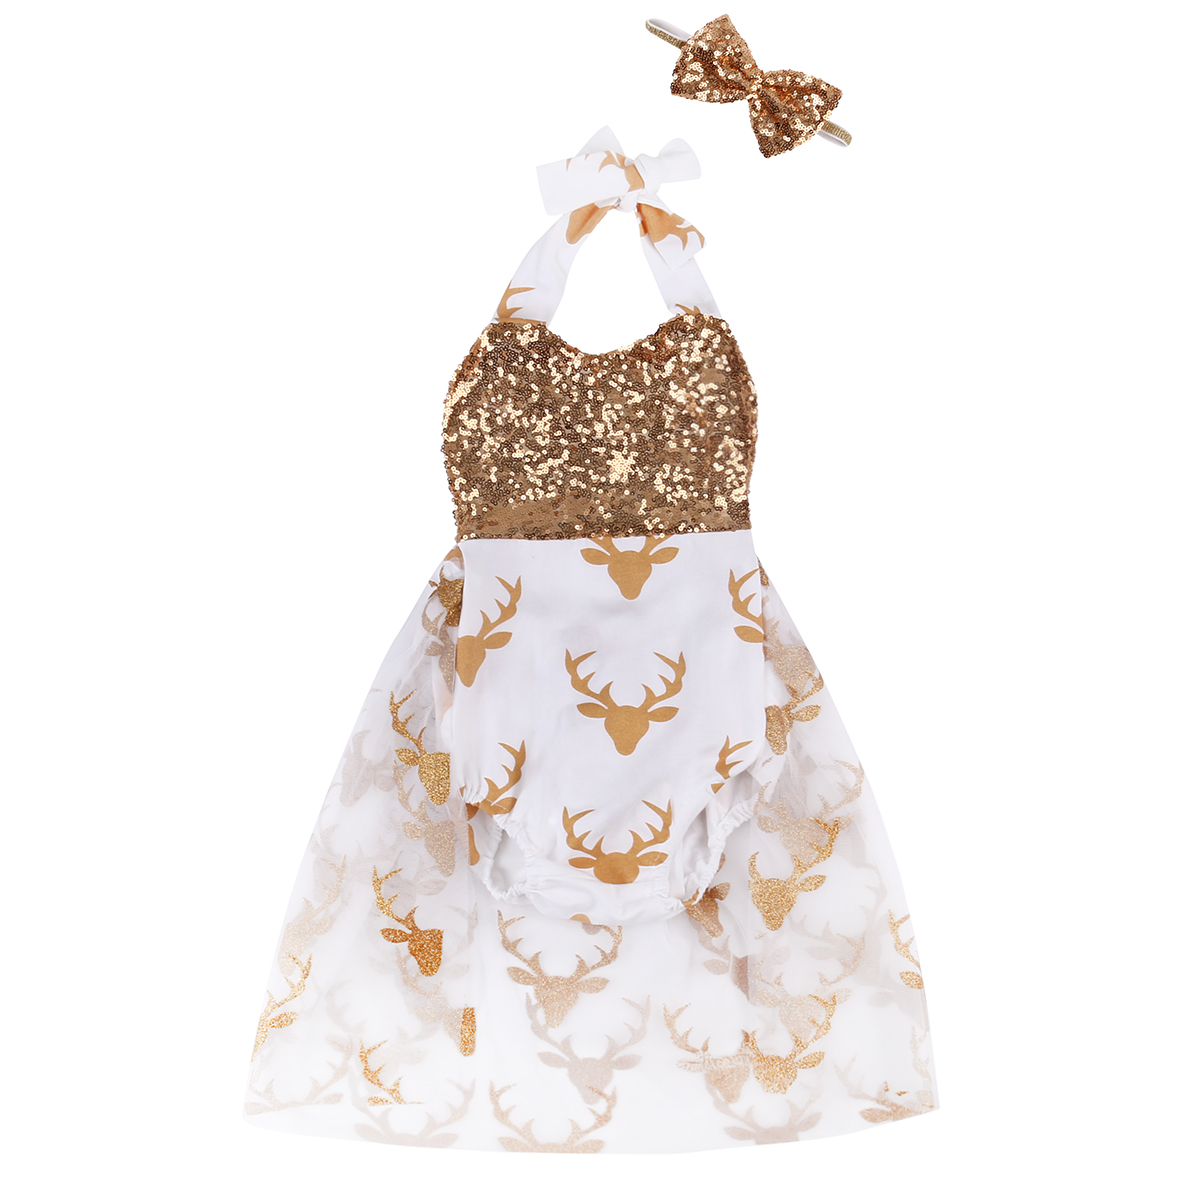 Summer Baby Clothes Newborn Toddler Baby Girls Romper Deer Sequins Belt Romper Jumpsuit Bowknot Handband 2pcs Outfit fashion 2pcs set newborn baby girls jumpsuit toddler girls flower pattern outfit clothes romper bodysuit pants